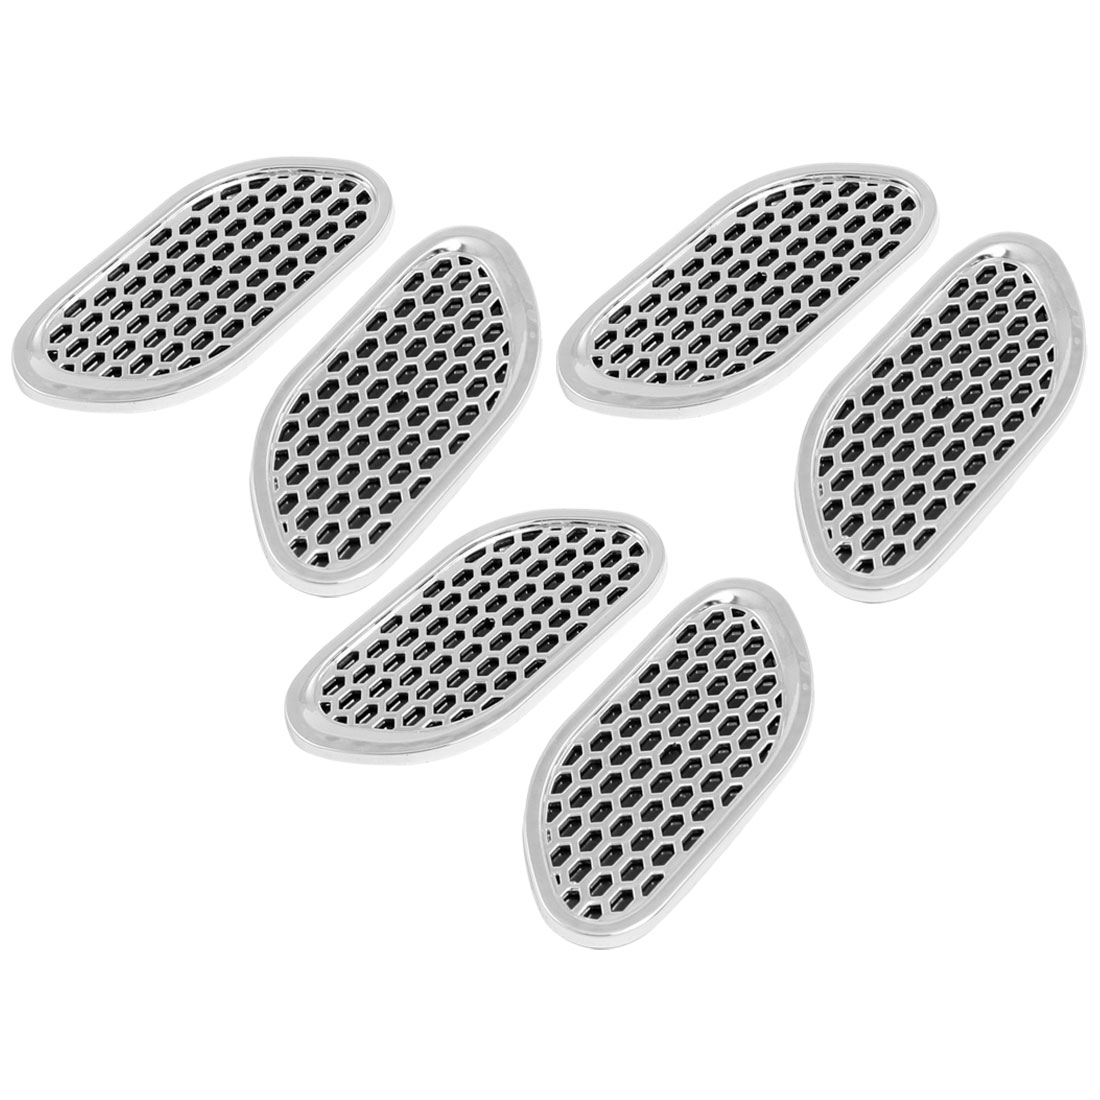 6 Pcs Car Exterior Plastic 3D Stickers Black Silver Tone